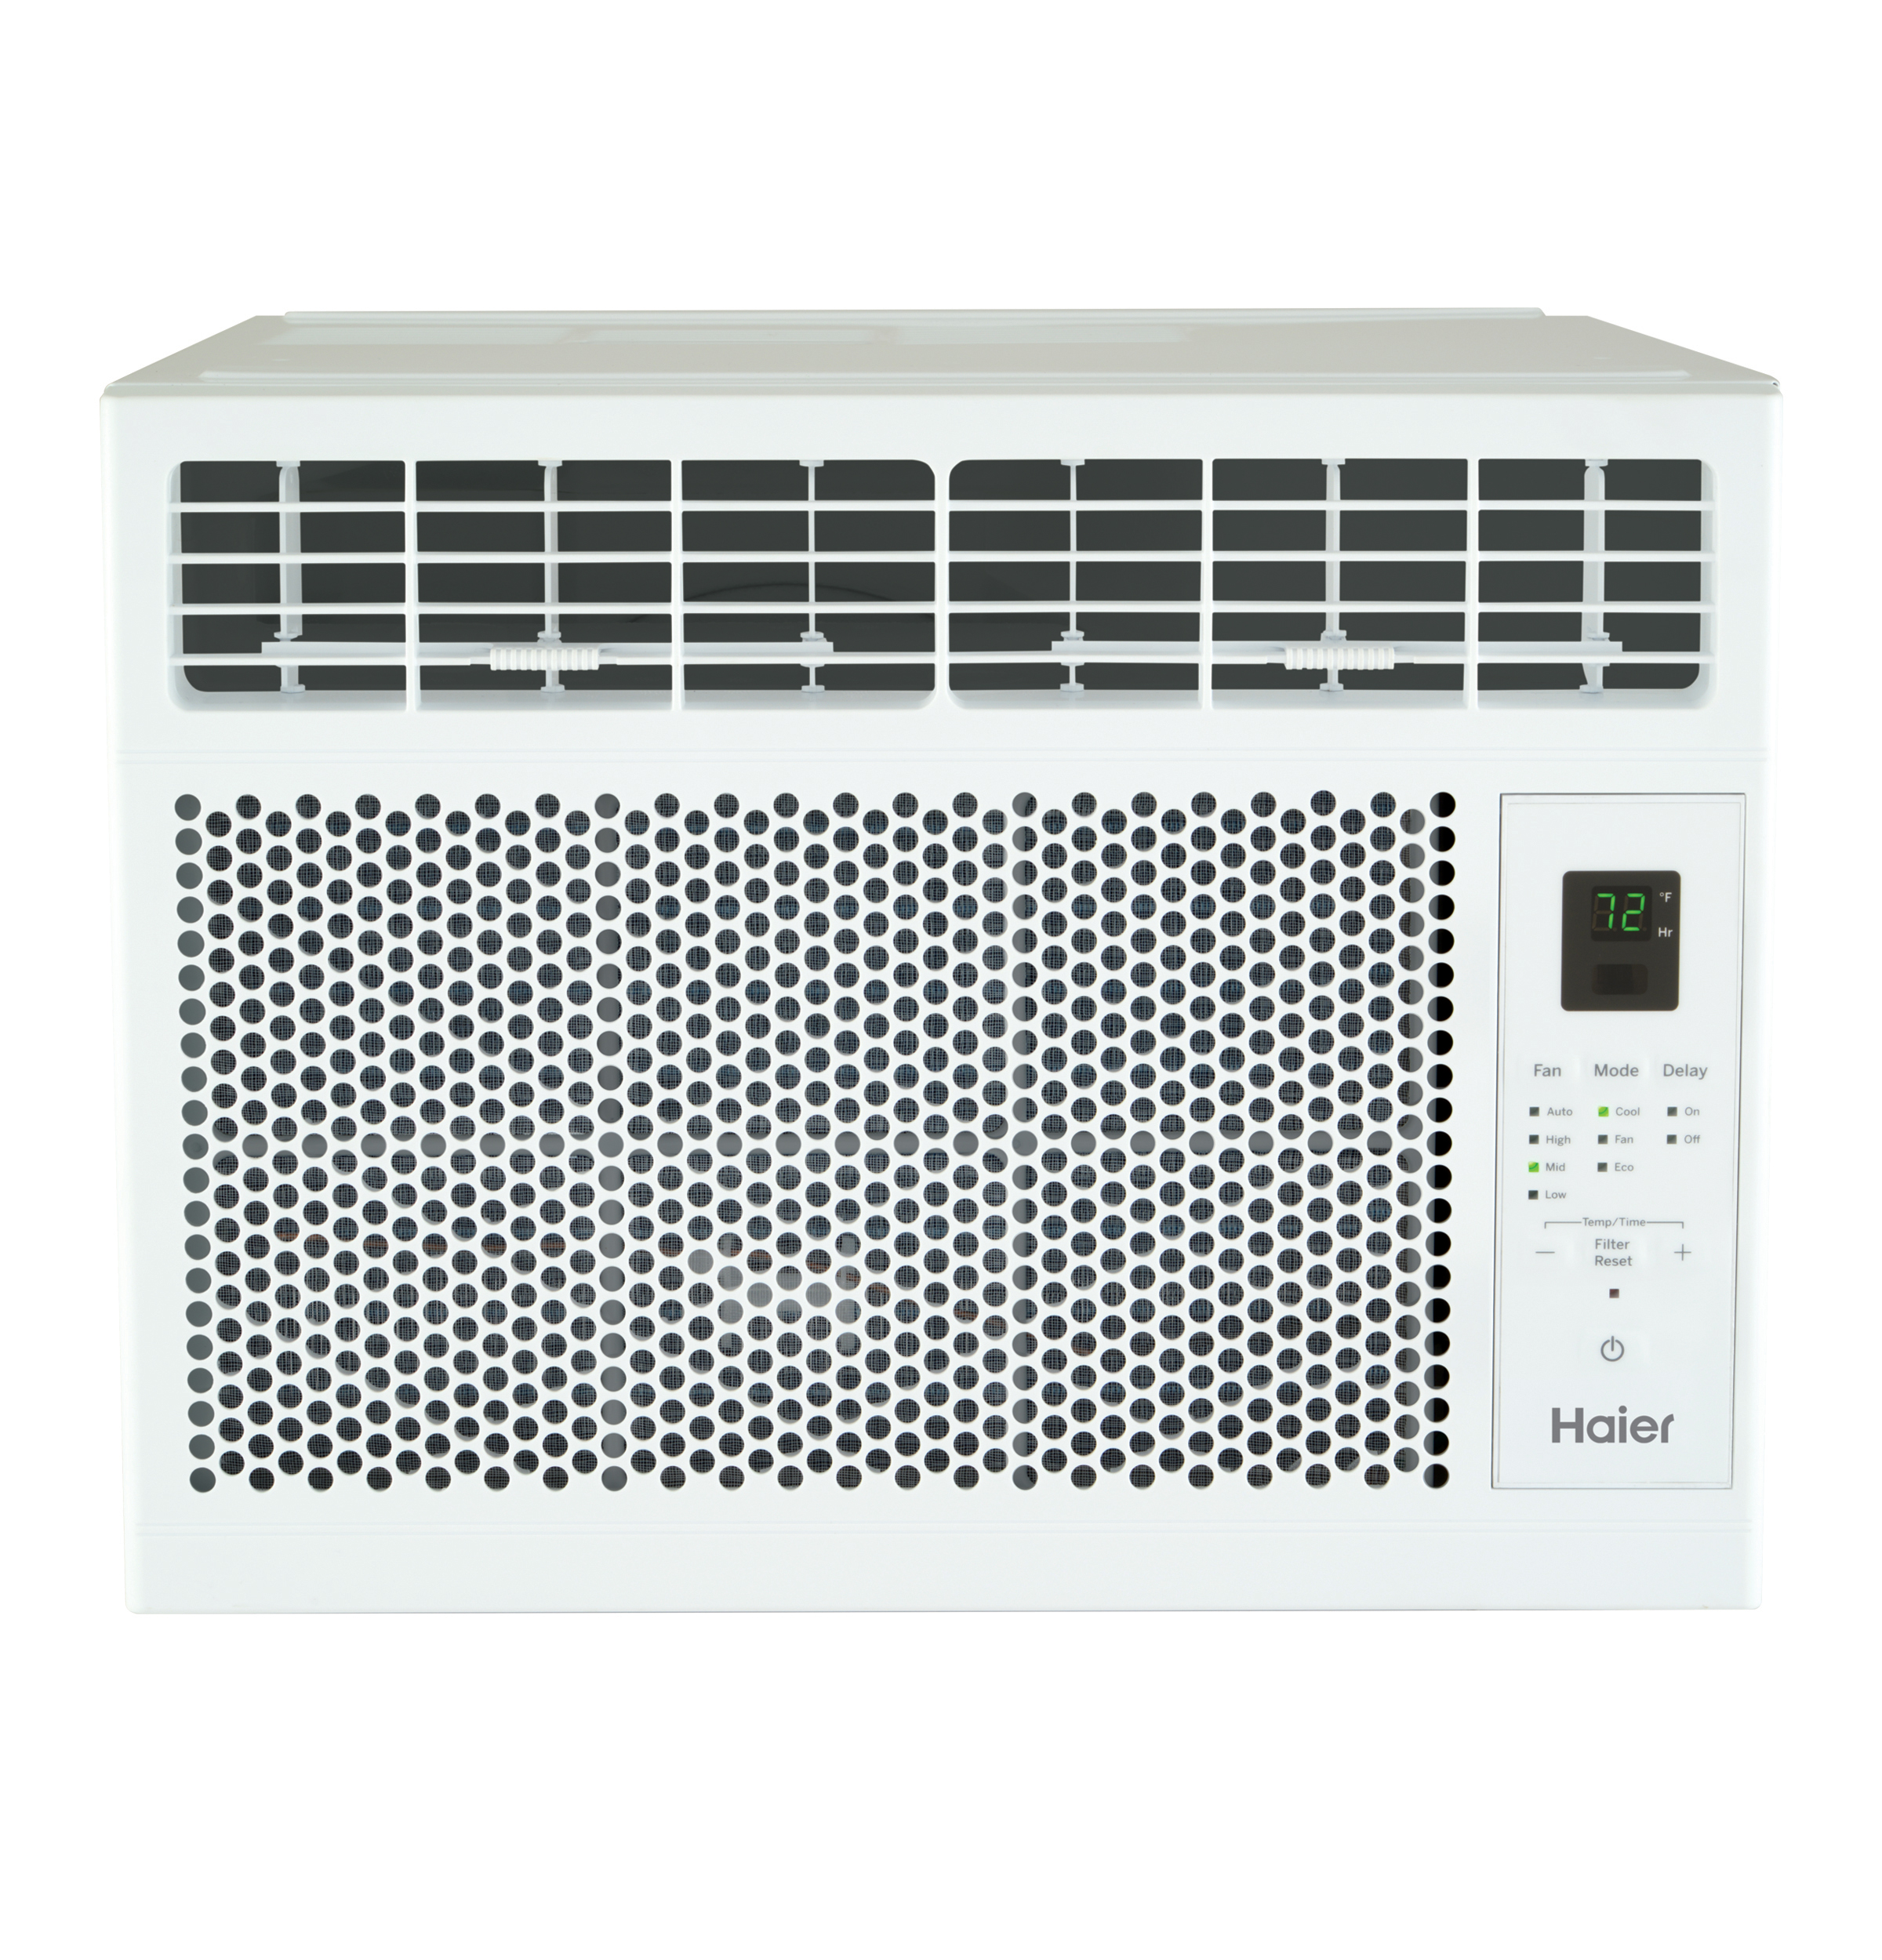 Haier Haier® 6,000 BTU Electronic Window Air Conditioner for Small Rooms up to 250 sq. ft.